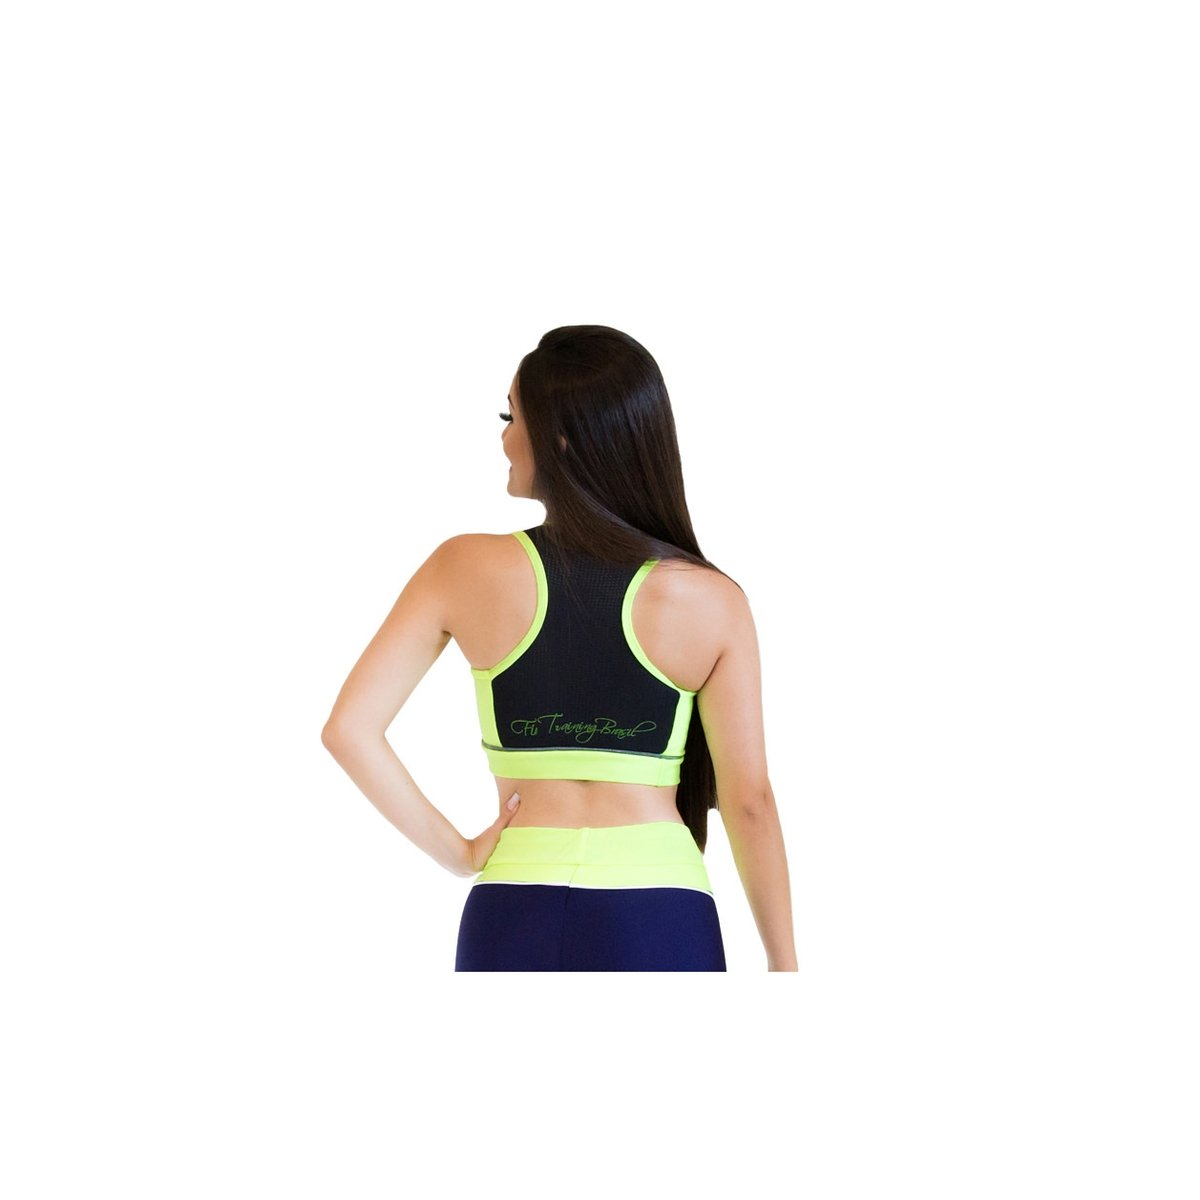 Brasil Fit Training Limão Top Top Fit Verde Forever qtEFIn4w